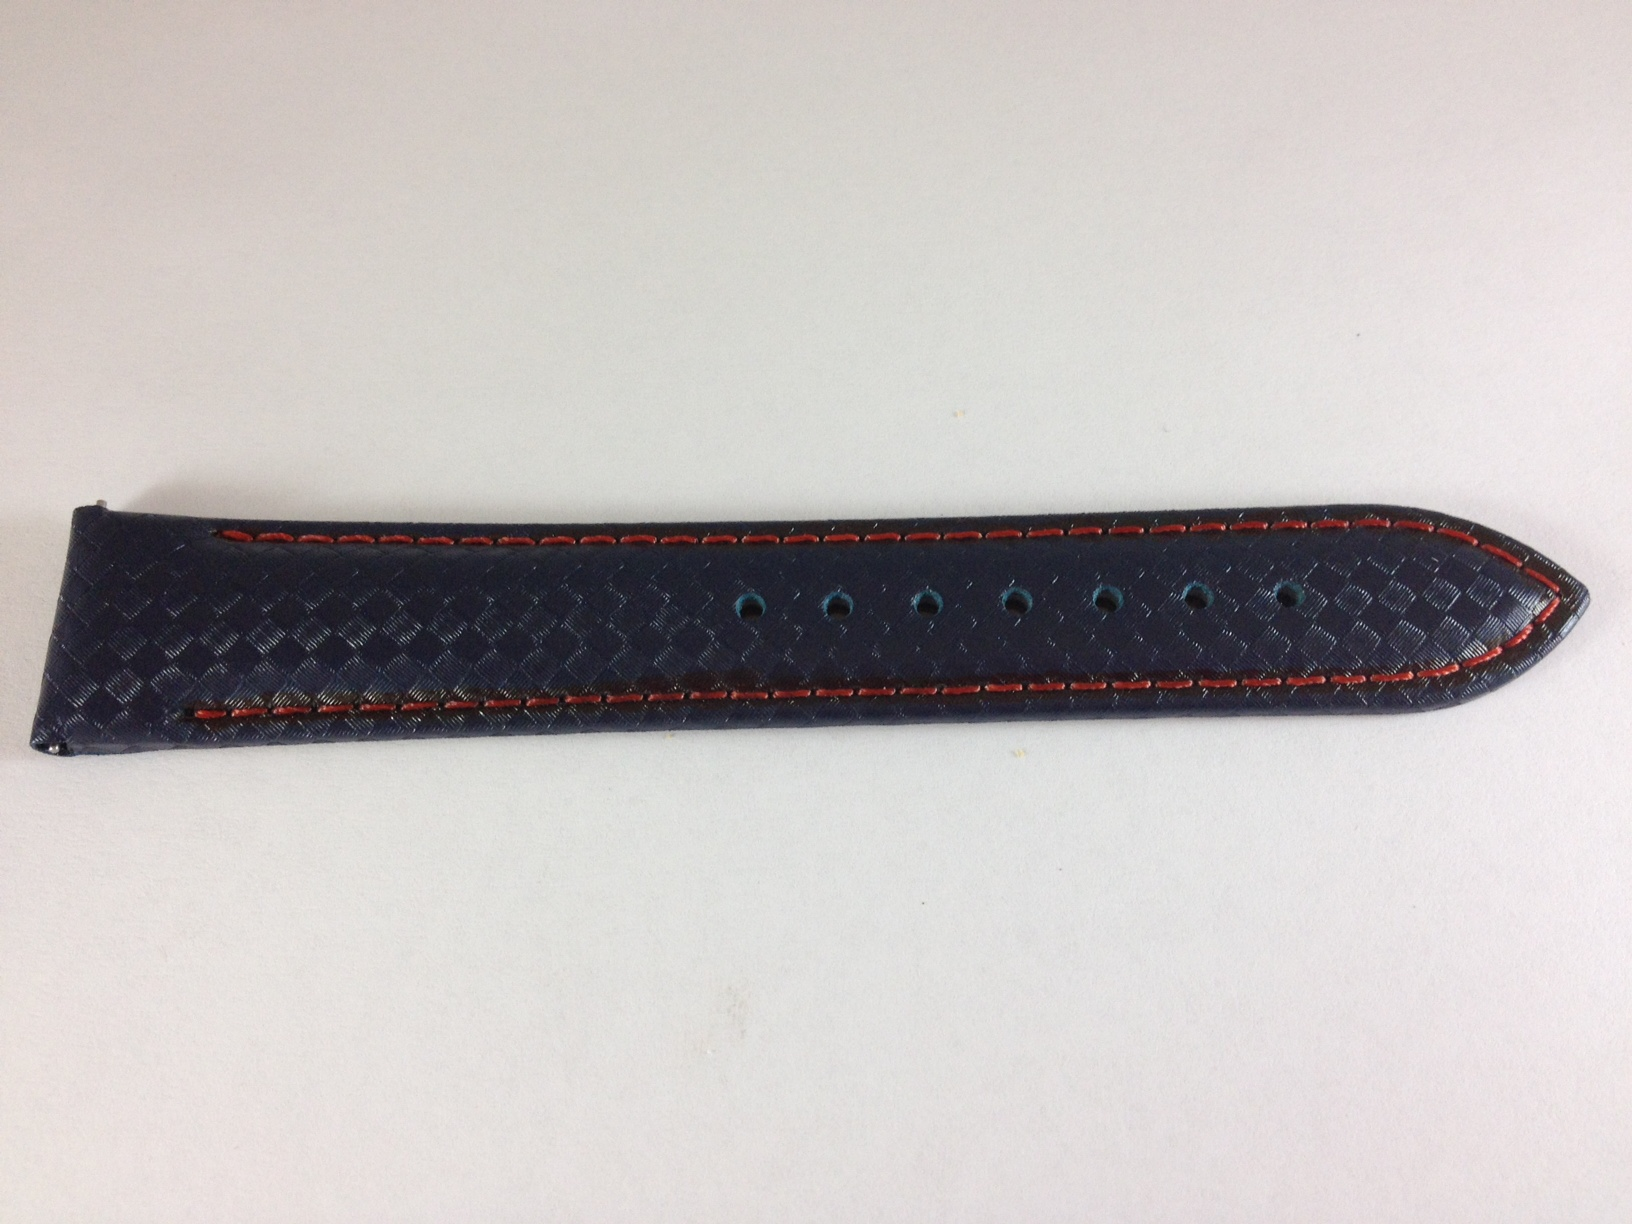 Black Carbon Fiber Strap with Orange Stitching